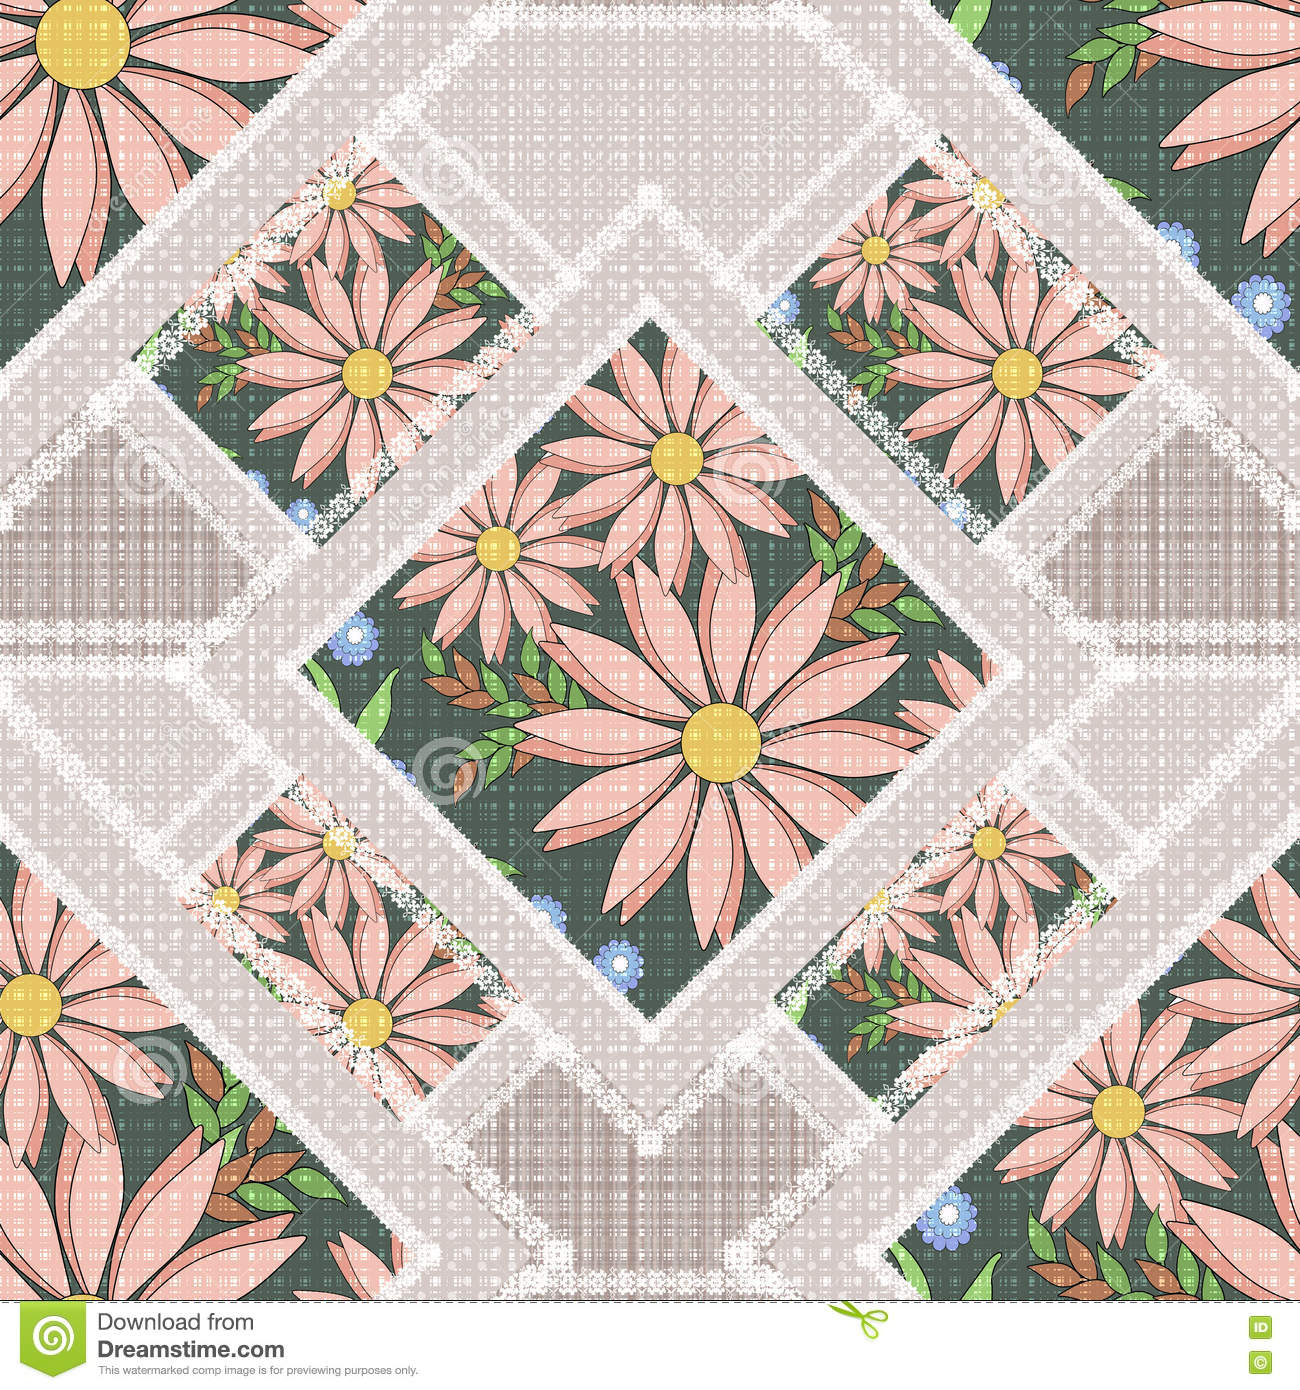 Abstract Flower Background With Decoration Elements For: Patchwork Abstract Seamless Floral, Pattern Texture Light